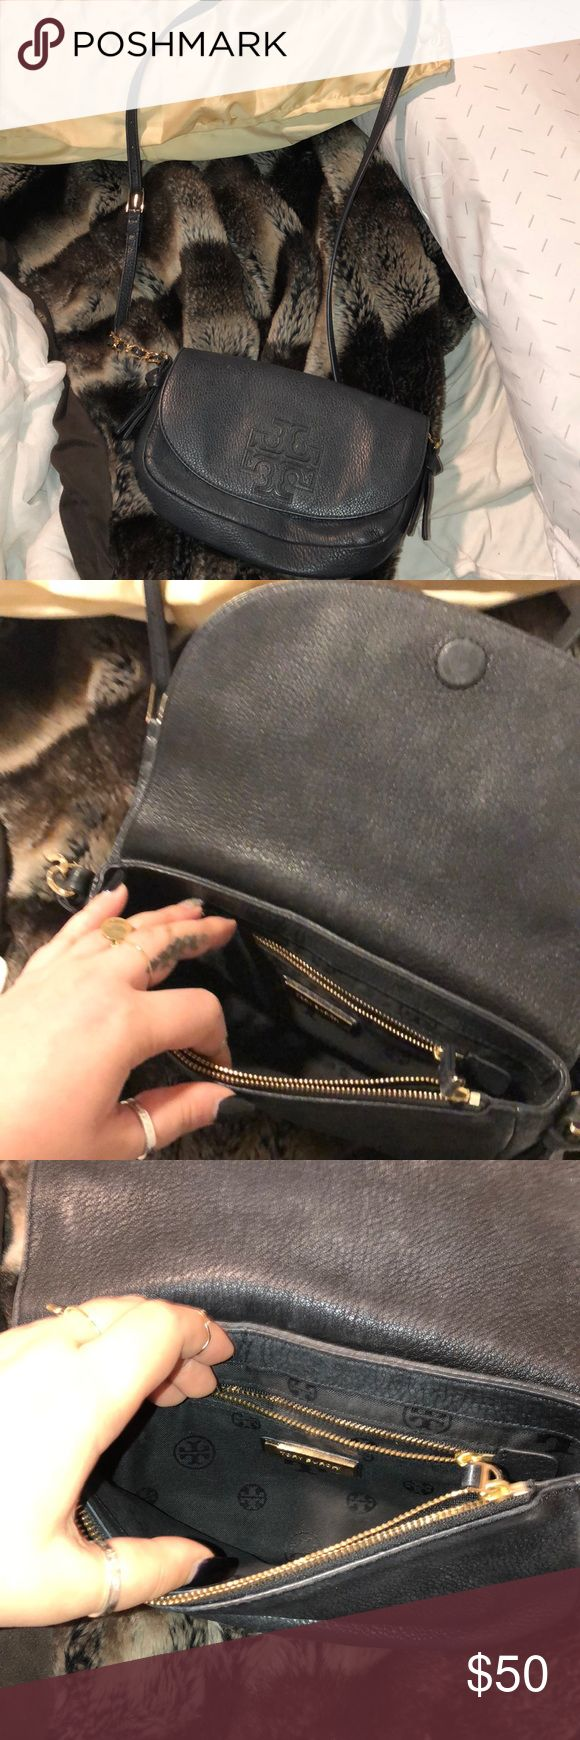 Tory Burch crossbody bag small size Used but still good condition Tory Burch Bags Crossbody Bags